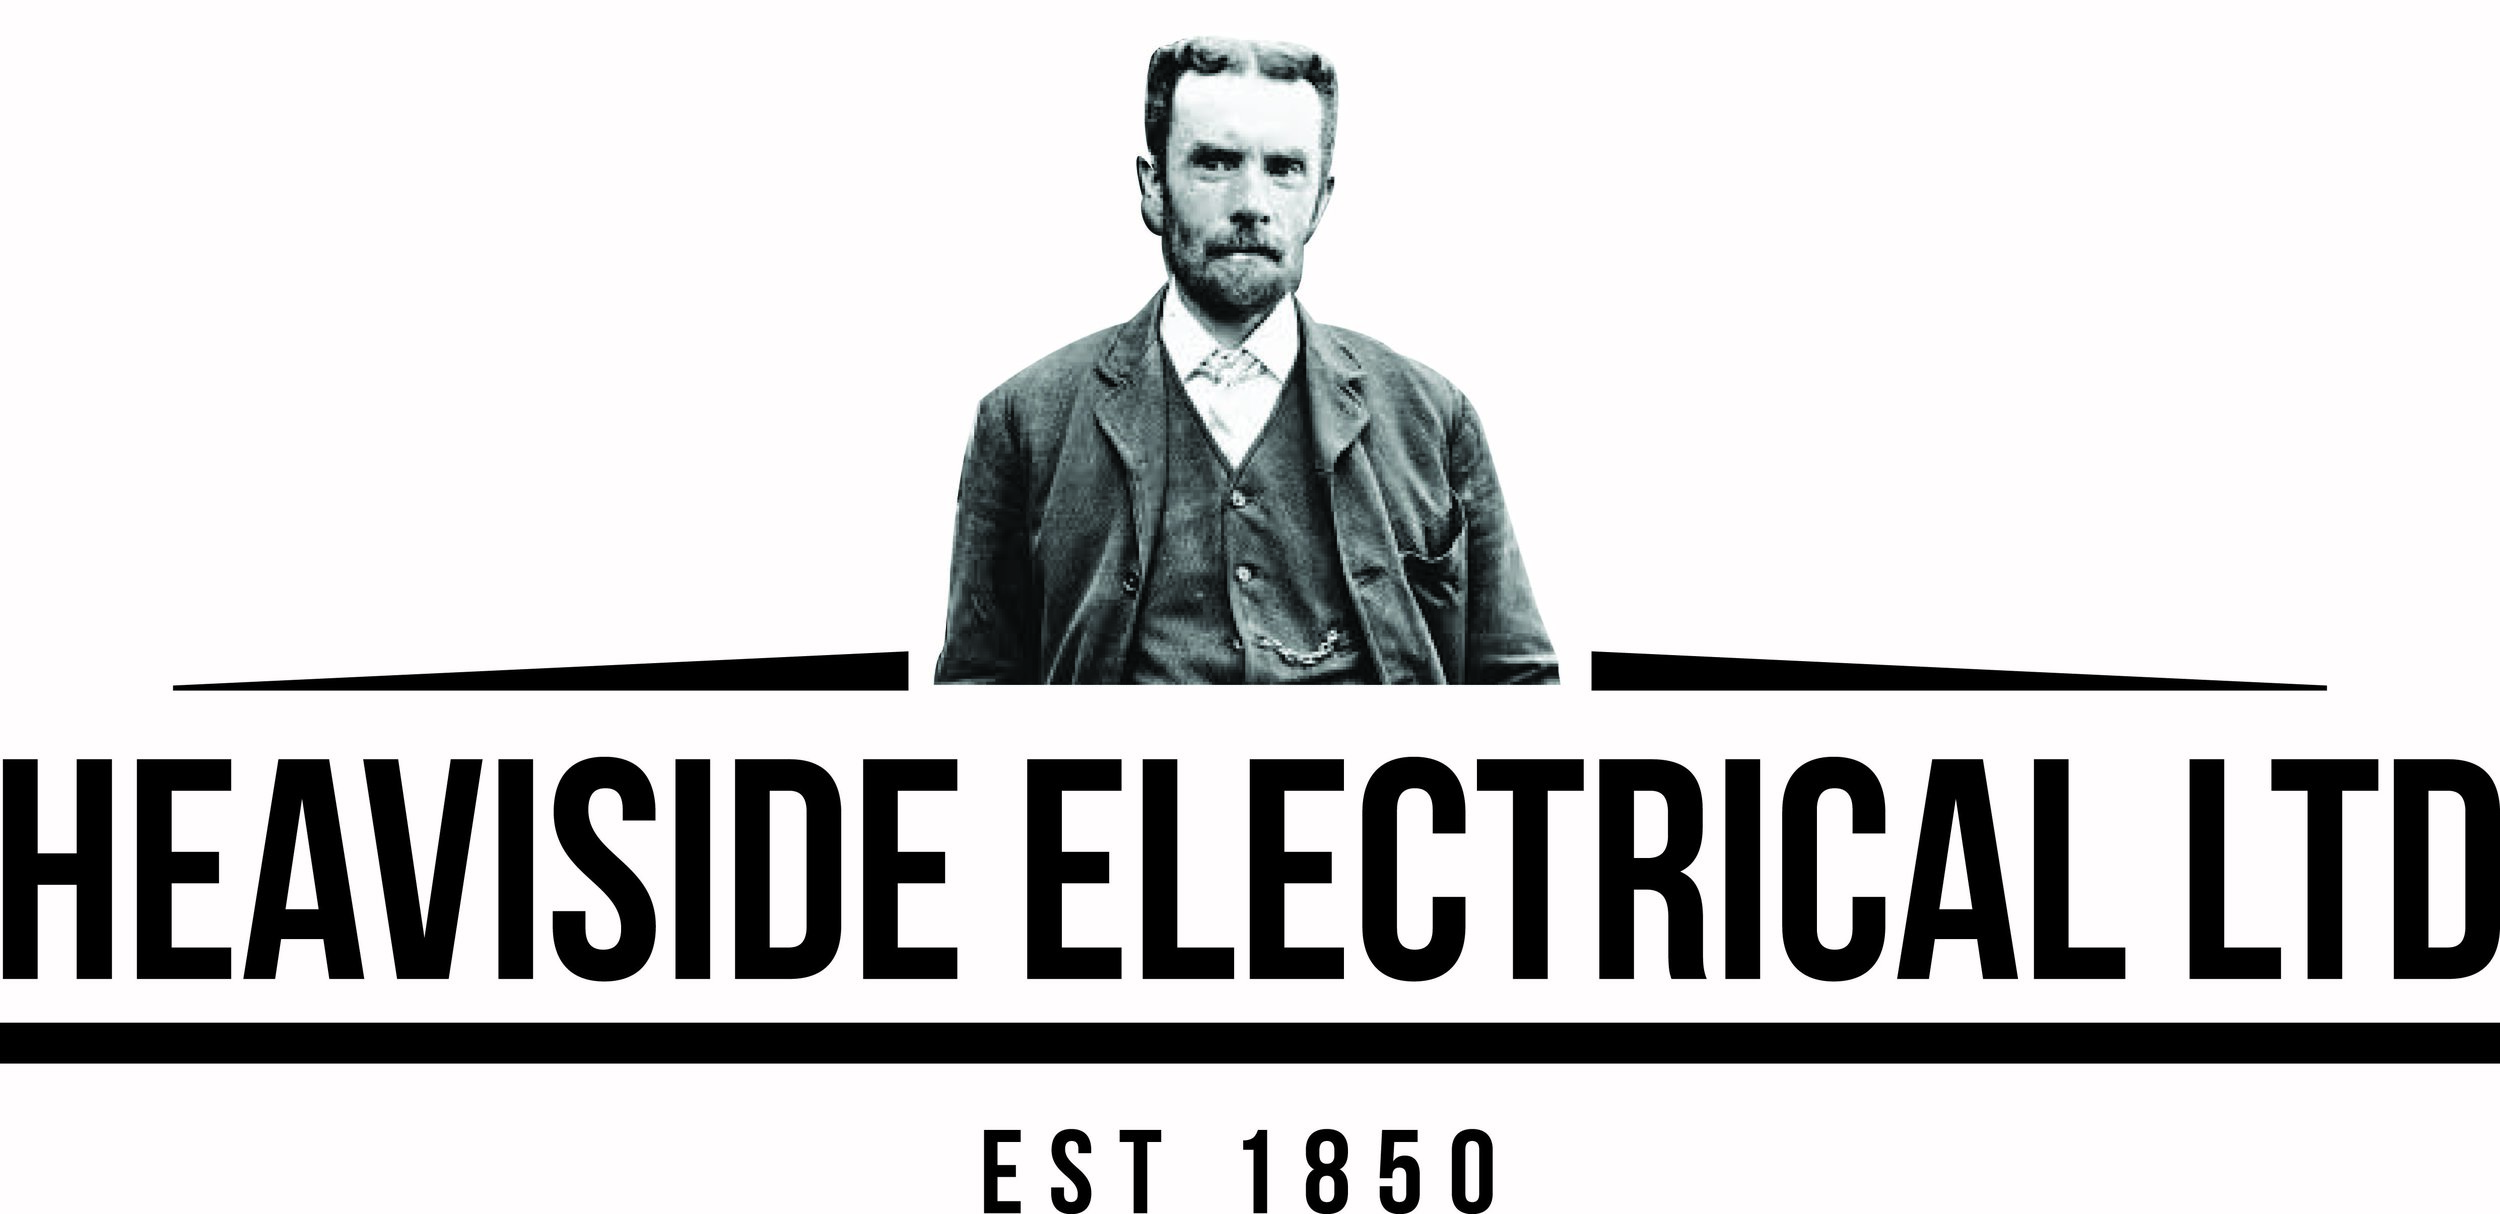 heaveside_electrical2.jpg